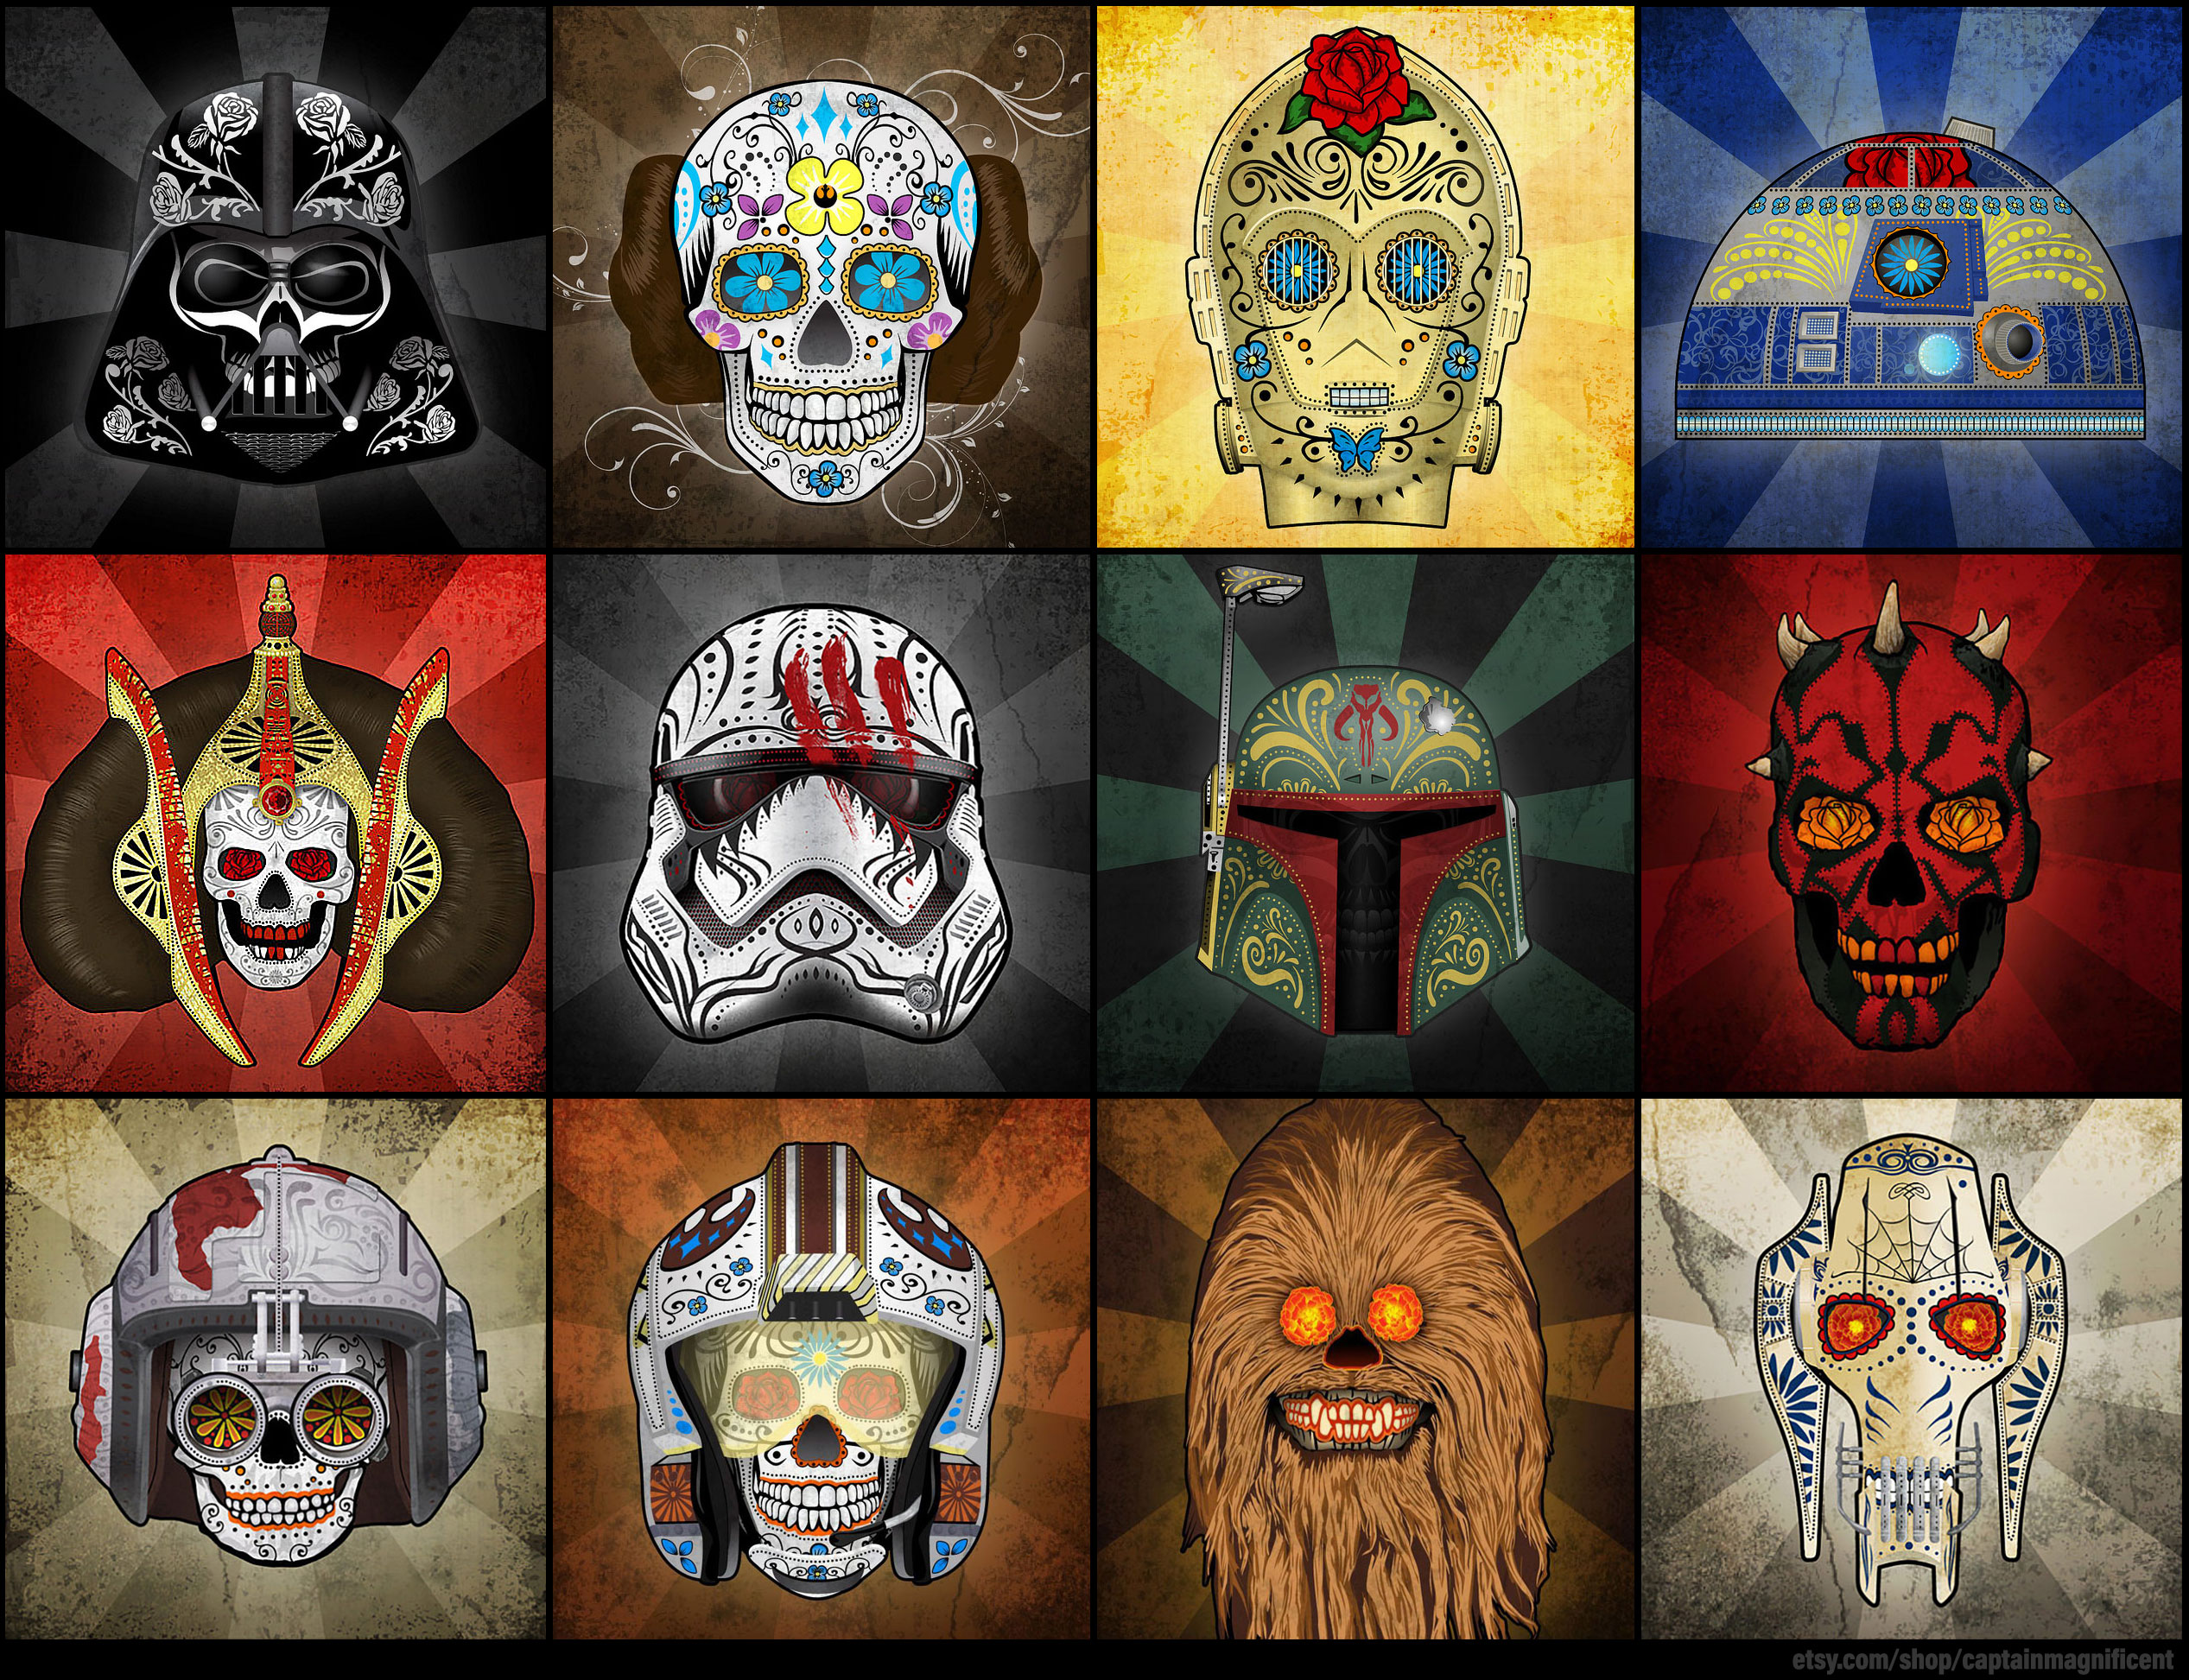 8 - Star Wars Day of the Dead by Captain Magnificient